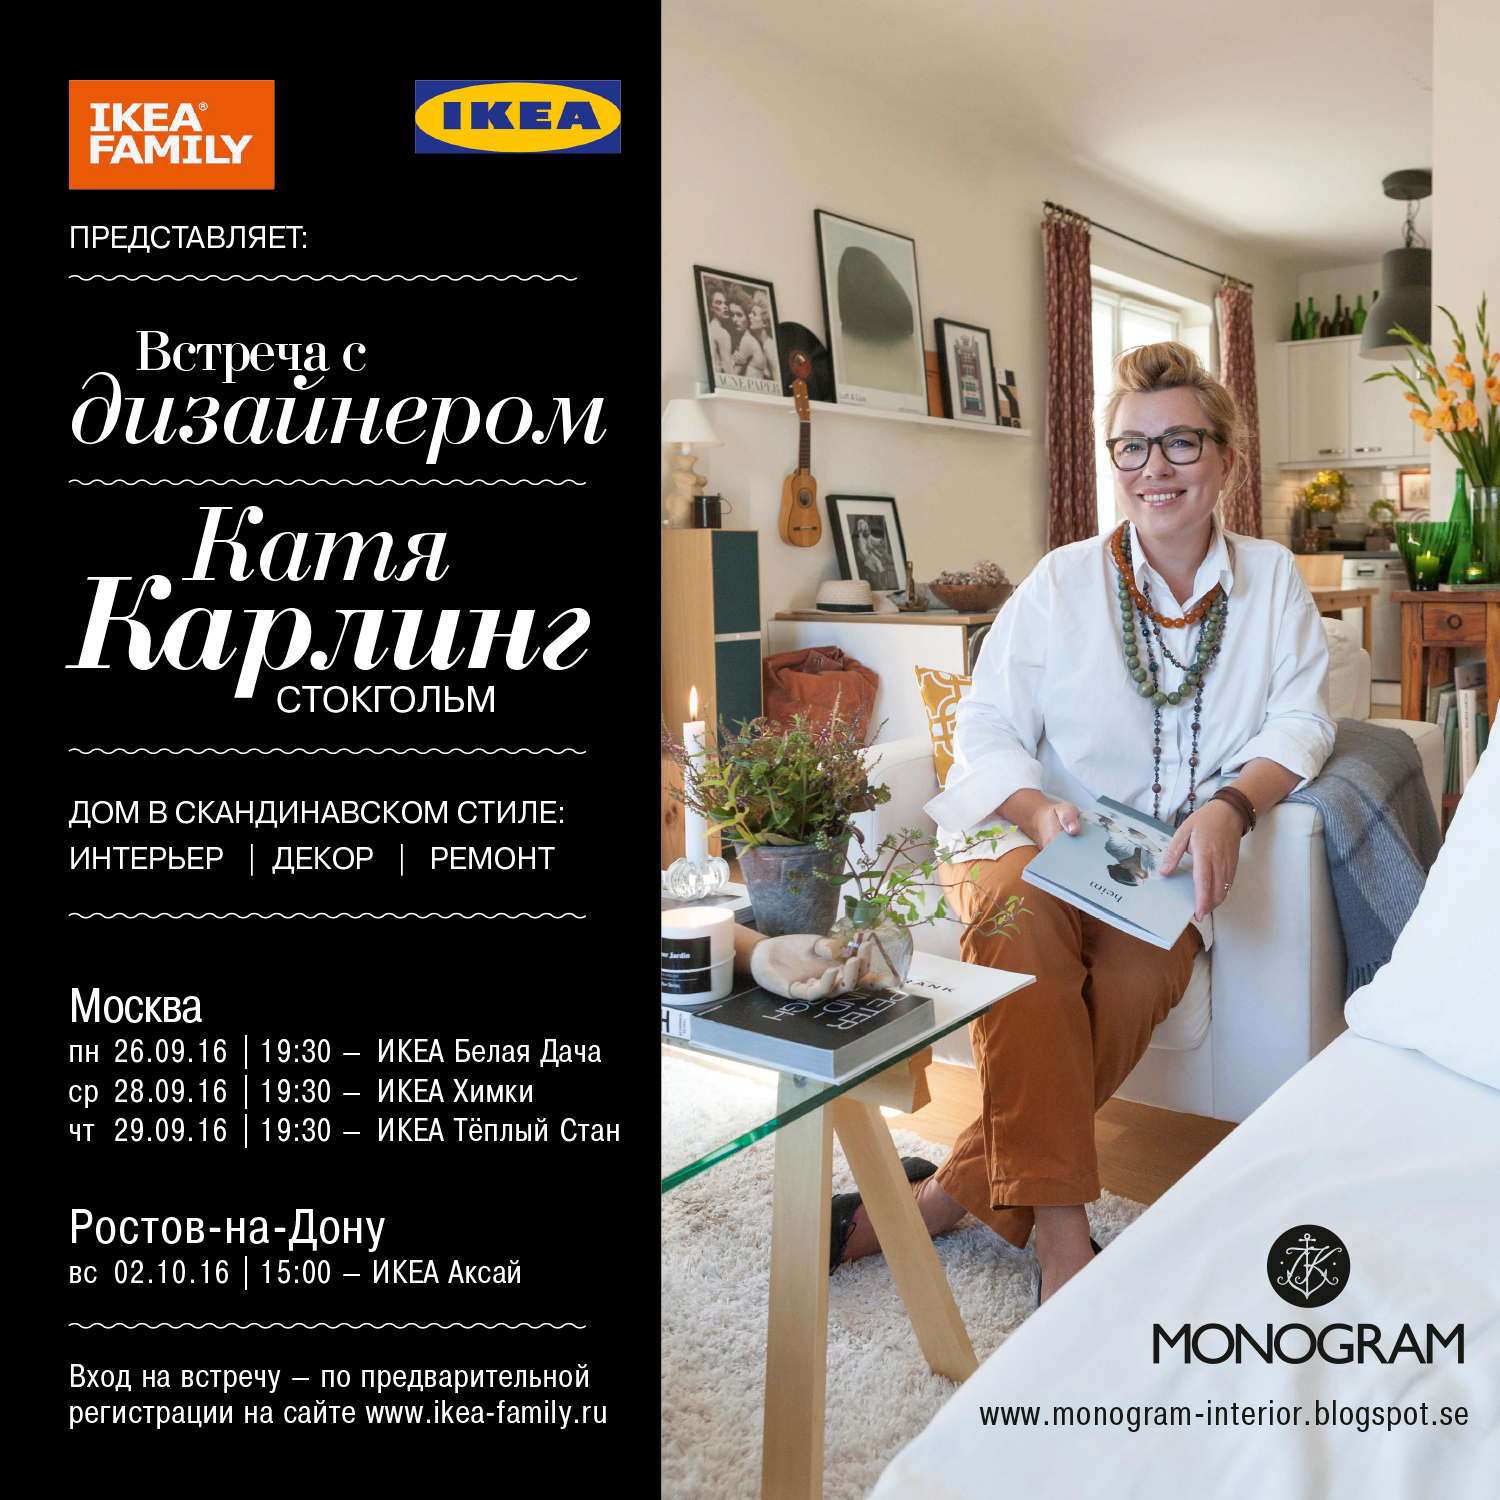 Monogram Interior Katja Karling In Ikea Moscow And Rostov On Don